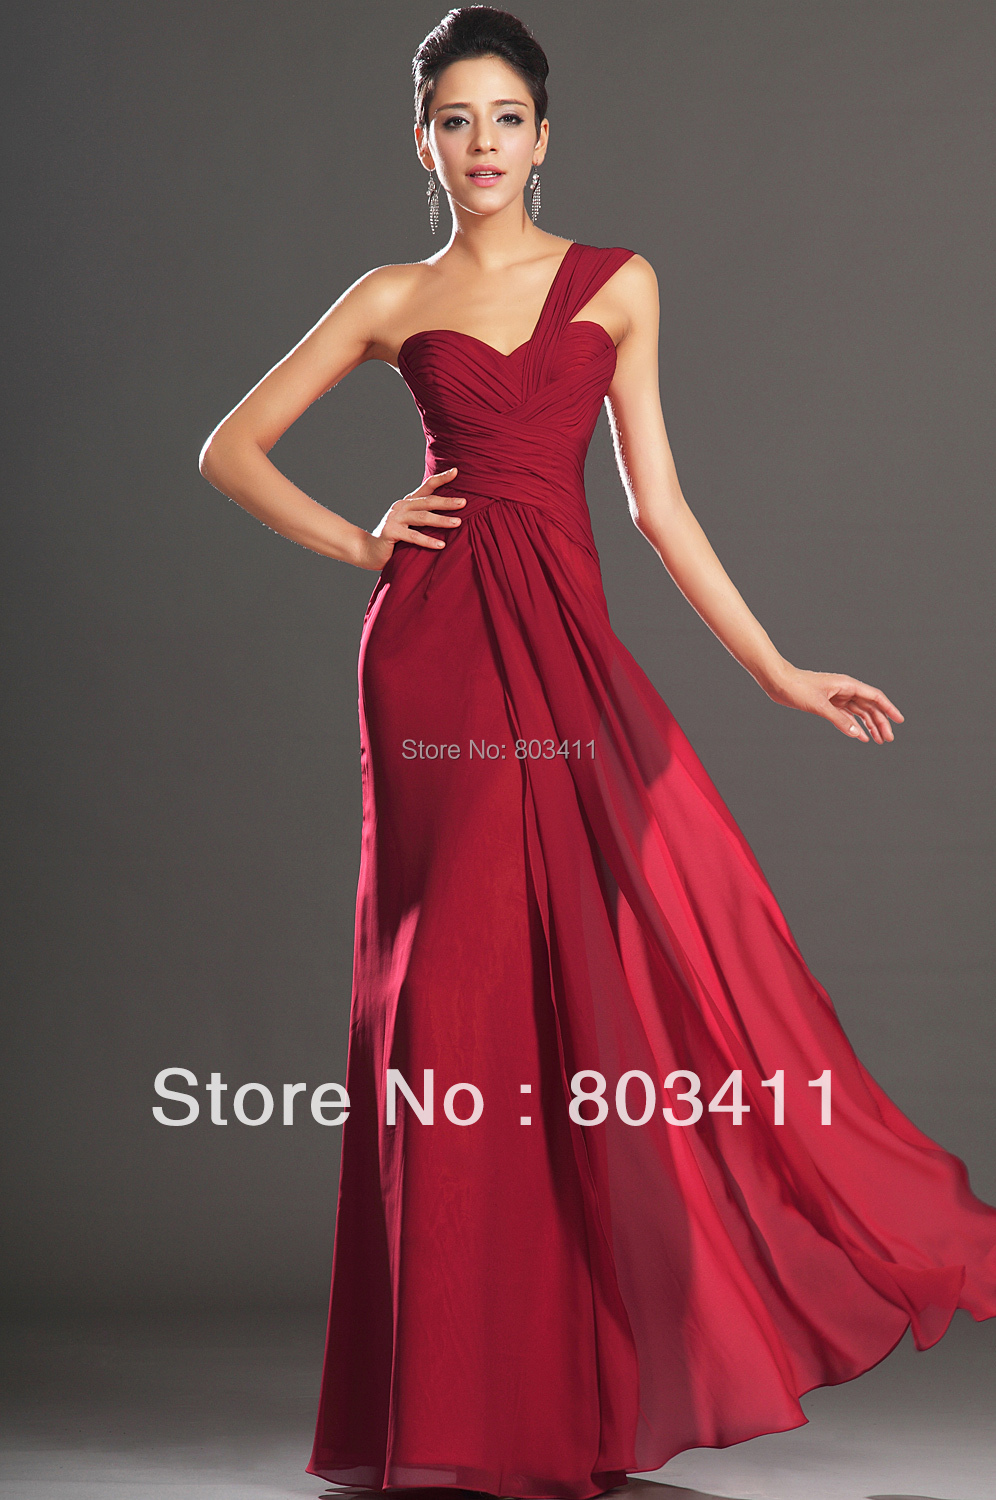 FreeShipping New Amazing One Shoulder Sweetheart Neckline Ruched Bodice Evening Dress